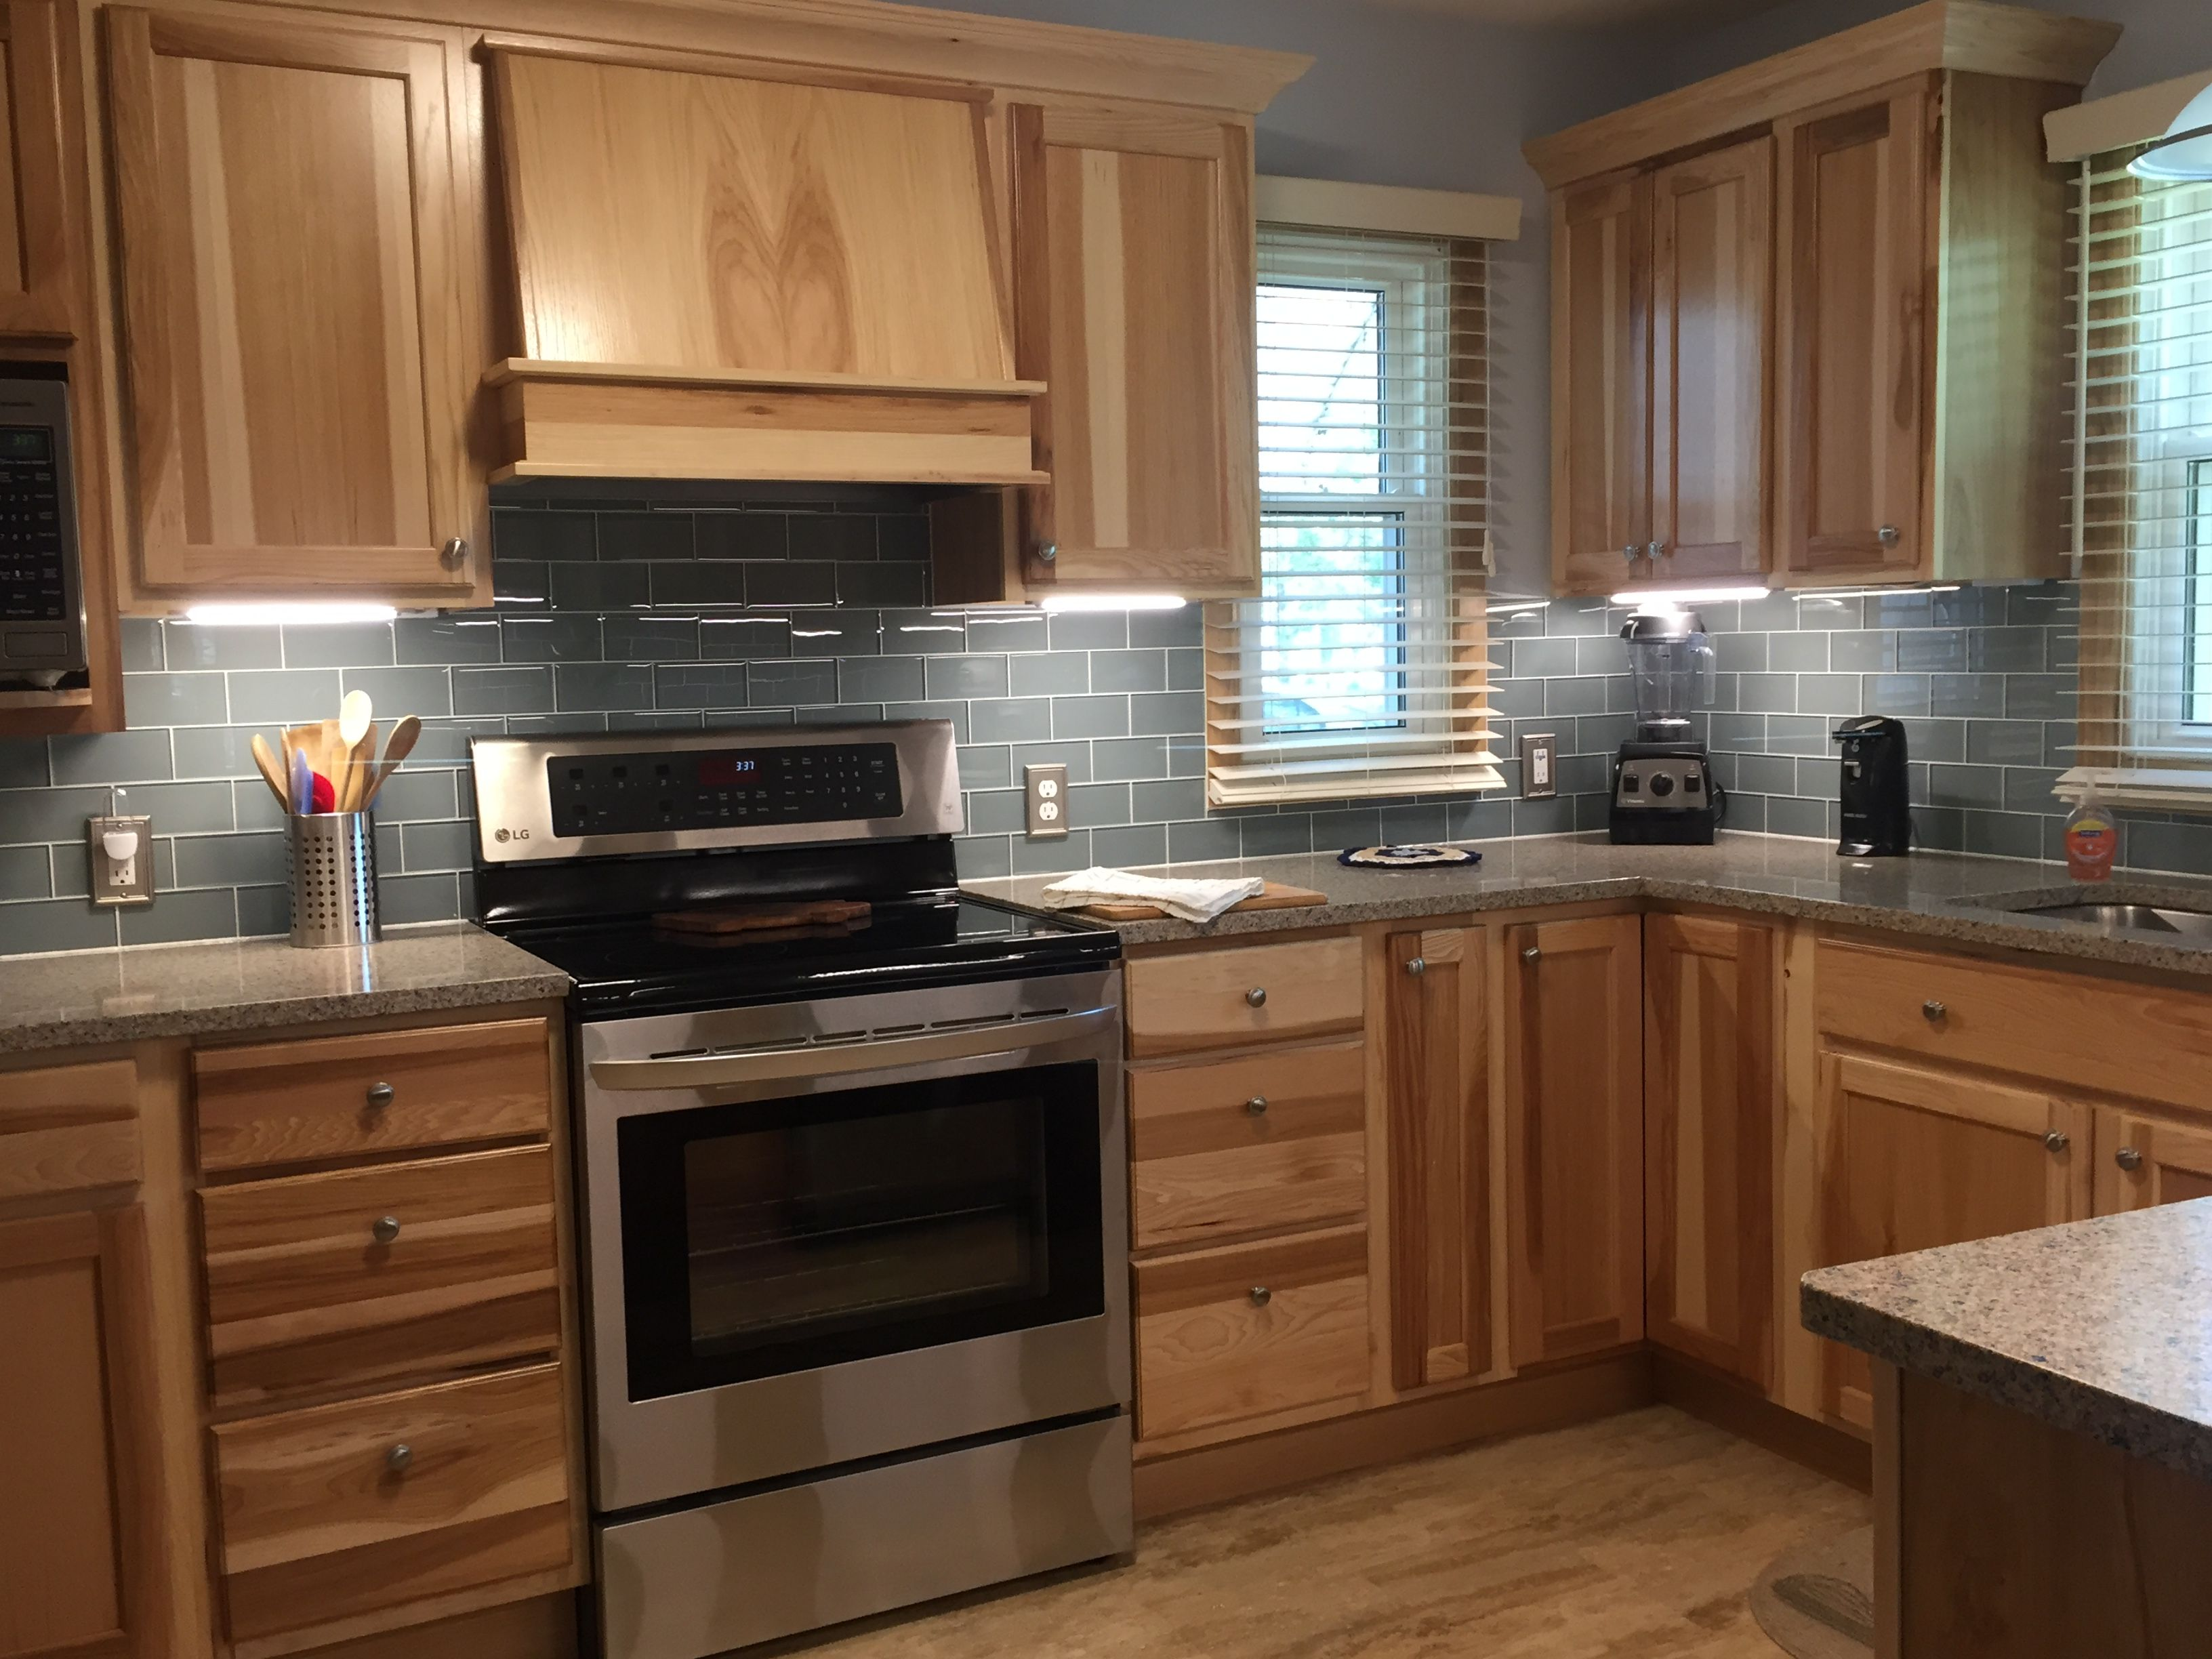 Hickory Cabinets And Range Hood With Smoky Blue Backsplash And Under Cabinet Lighting Hickory Cabinets Kitchen Backsplash Designs Small Kitchen Renovations